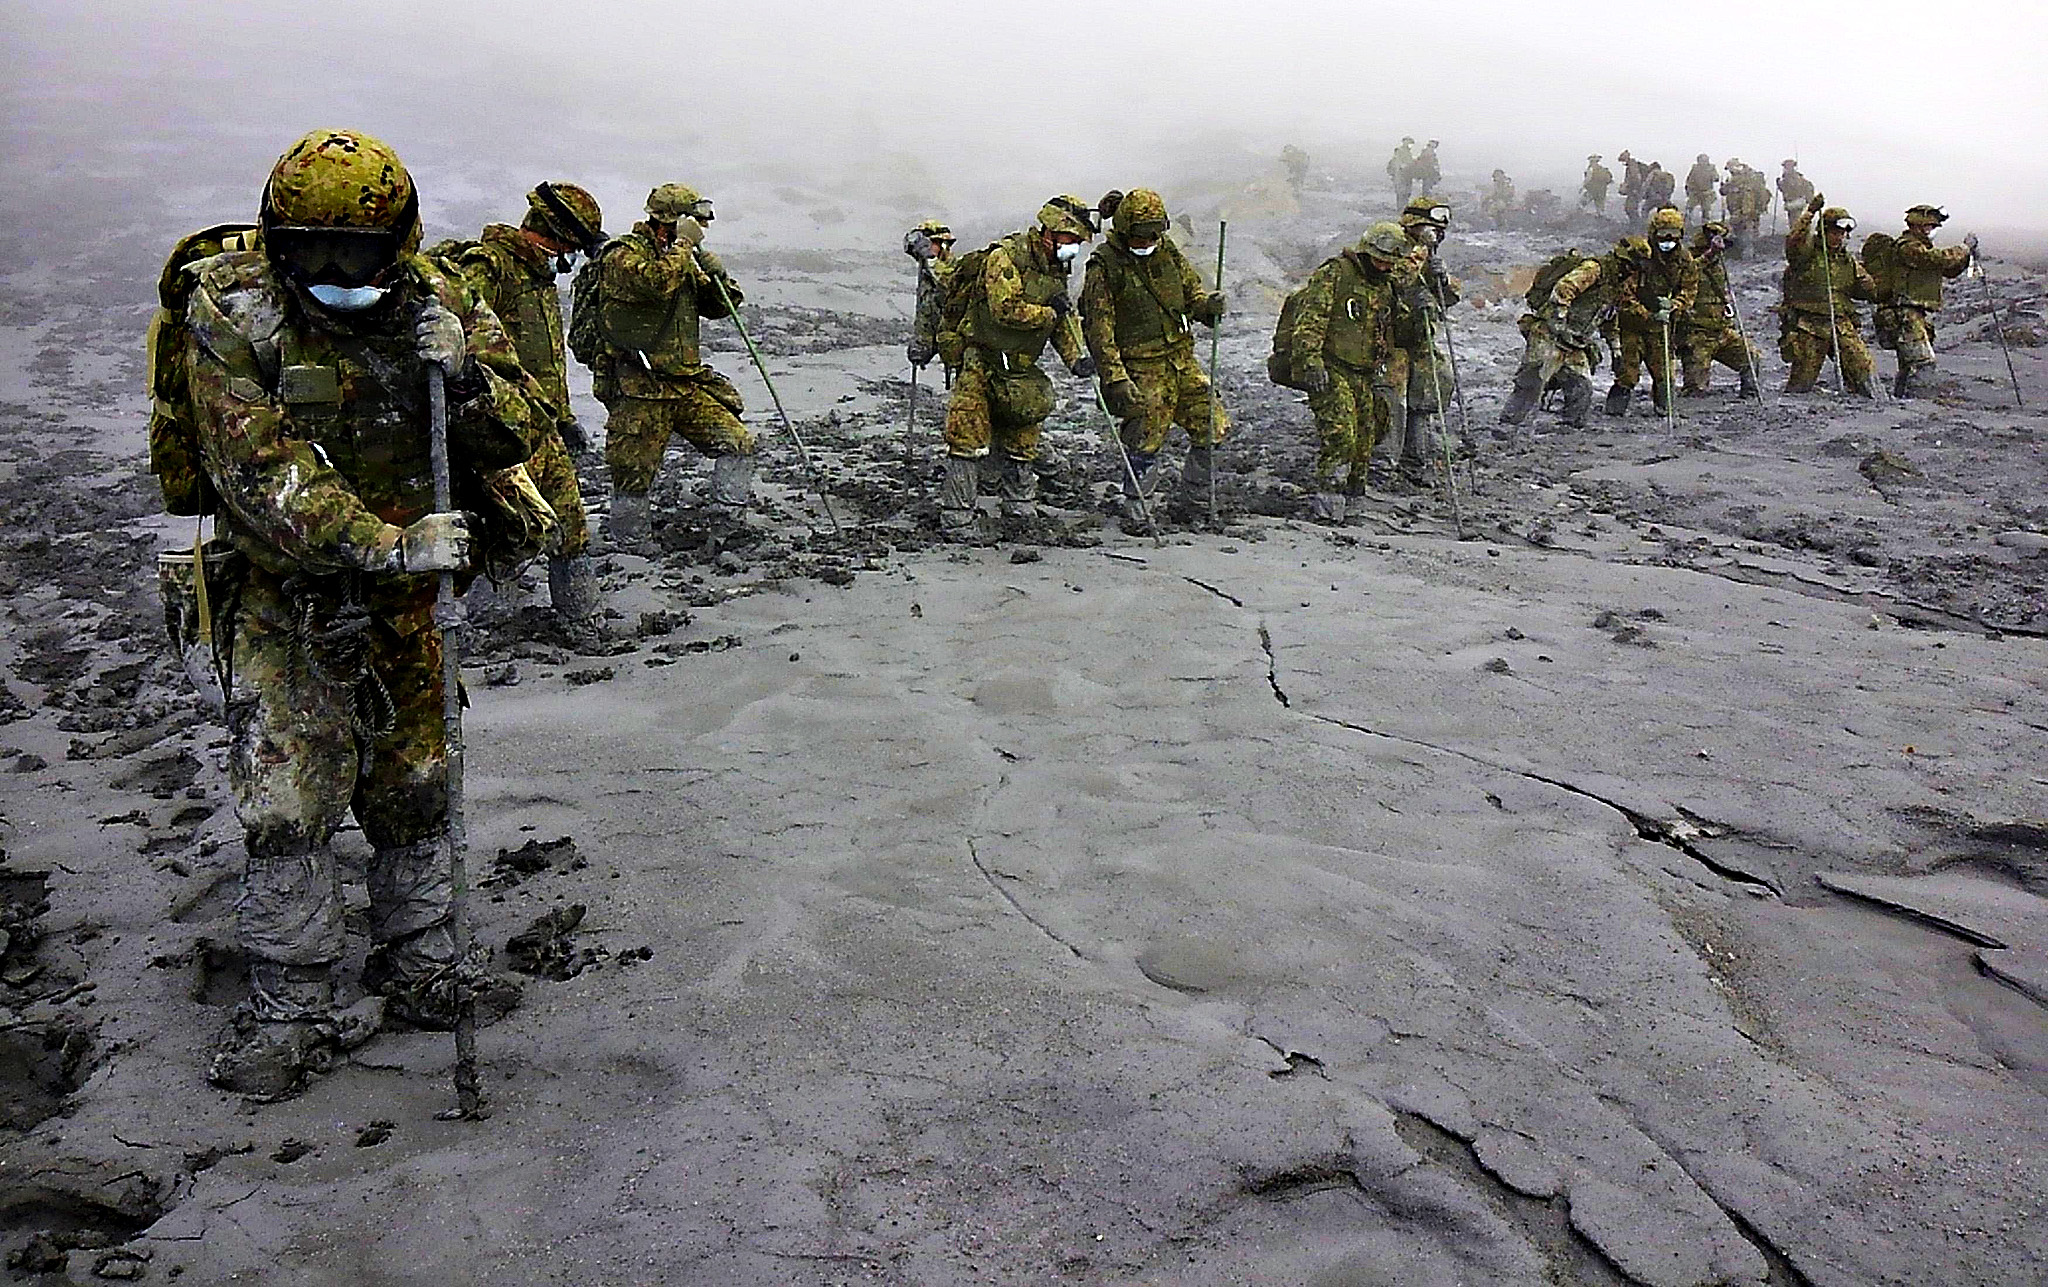 JSDF soldiers conduct rescue operations on Mount Ontake, which erupted on September 27, 2014 and straddles Nagano and Gifu prefectures in central Japan...Japan Self-Defense Force (JSDF) soldiers conduct rescue operations on Mount Ontake, which erupted September 27, 2014 and straddles Nagano and Gifu prefectures in central Japan, in this October 7, 2014 handout photograph released by the Joint Staff of the Defence Ministry of Japan. Two more bodies were found on Mount Ontake on Tuesday, nearly a week and a half after the eruption that killed at least 51 people, Japanese media reported. The search continues for 10 people still missing in what has become the nation's worst volcanic disaster in a century.